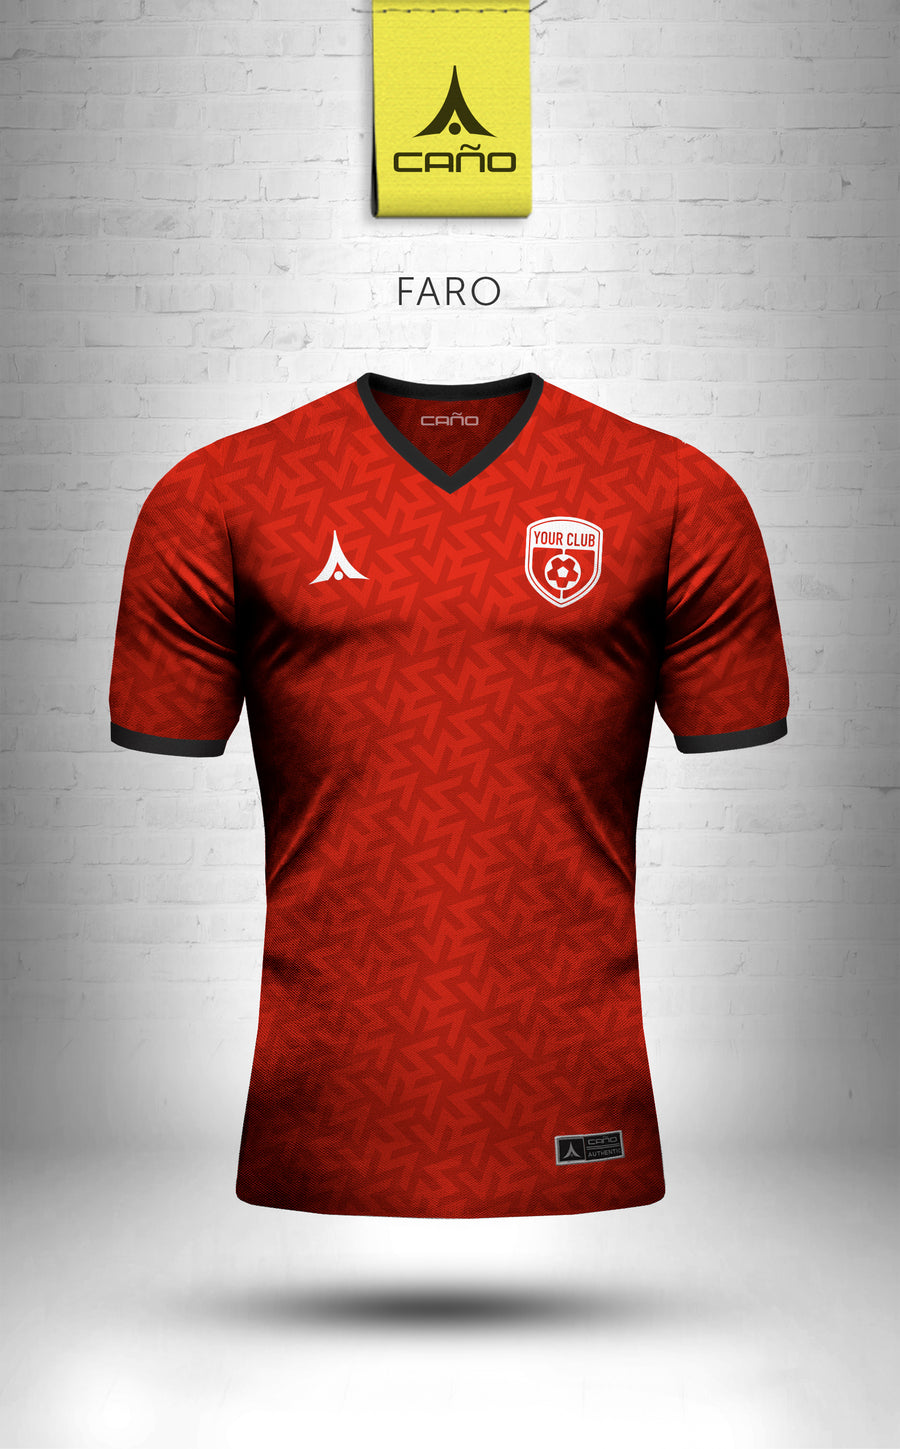 Faro in red/black/white